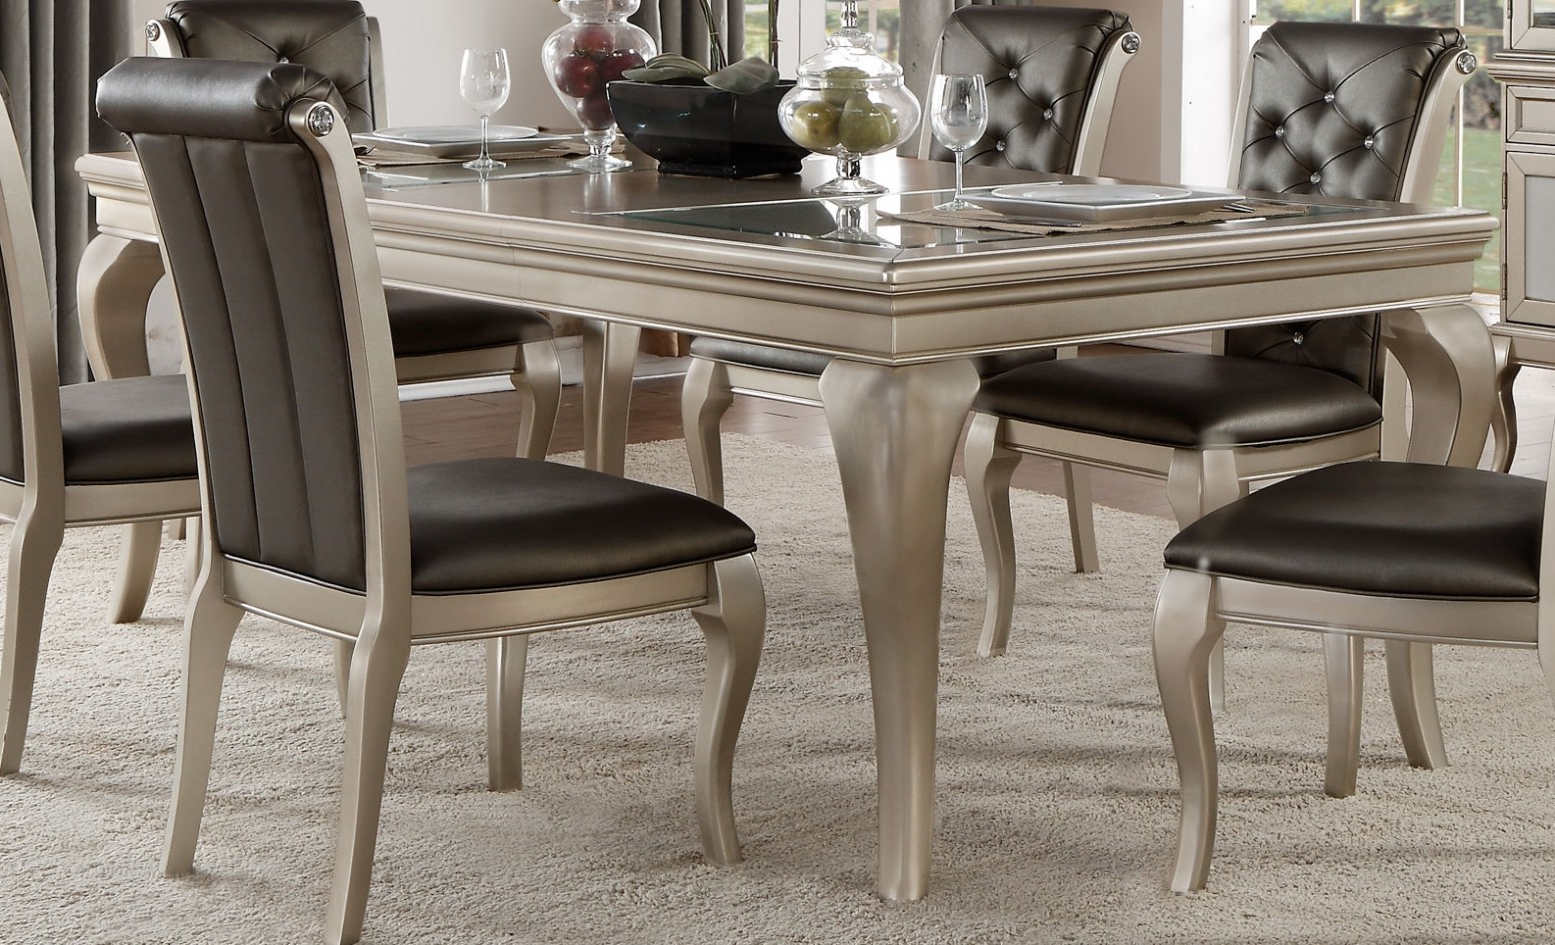 Most Recent Crawford Transitional Rectangular Extendable Dining Table Within Transitional Rectangular Dining Tables (View 13 of 21)